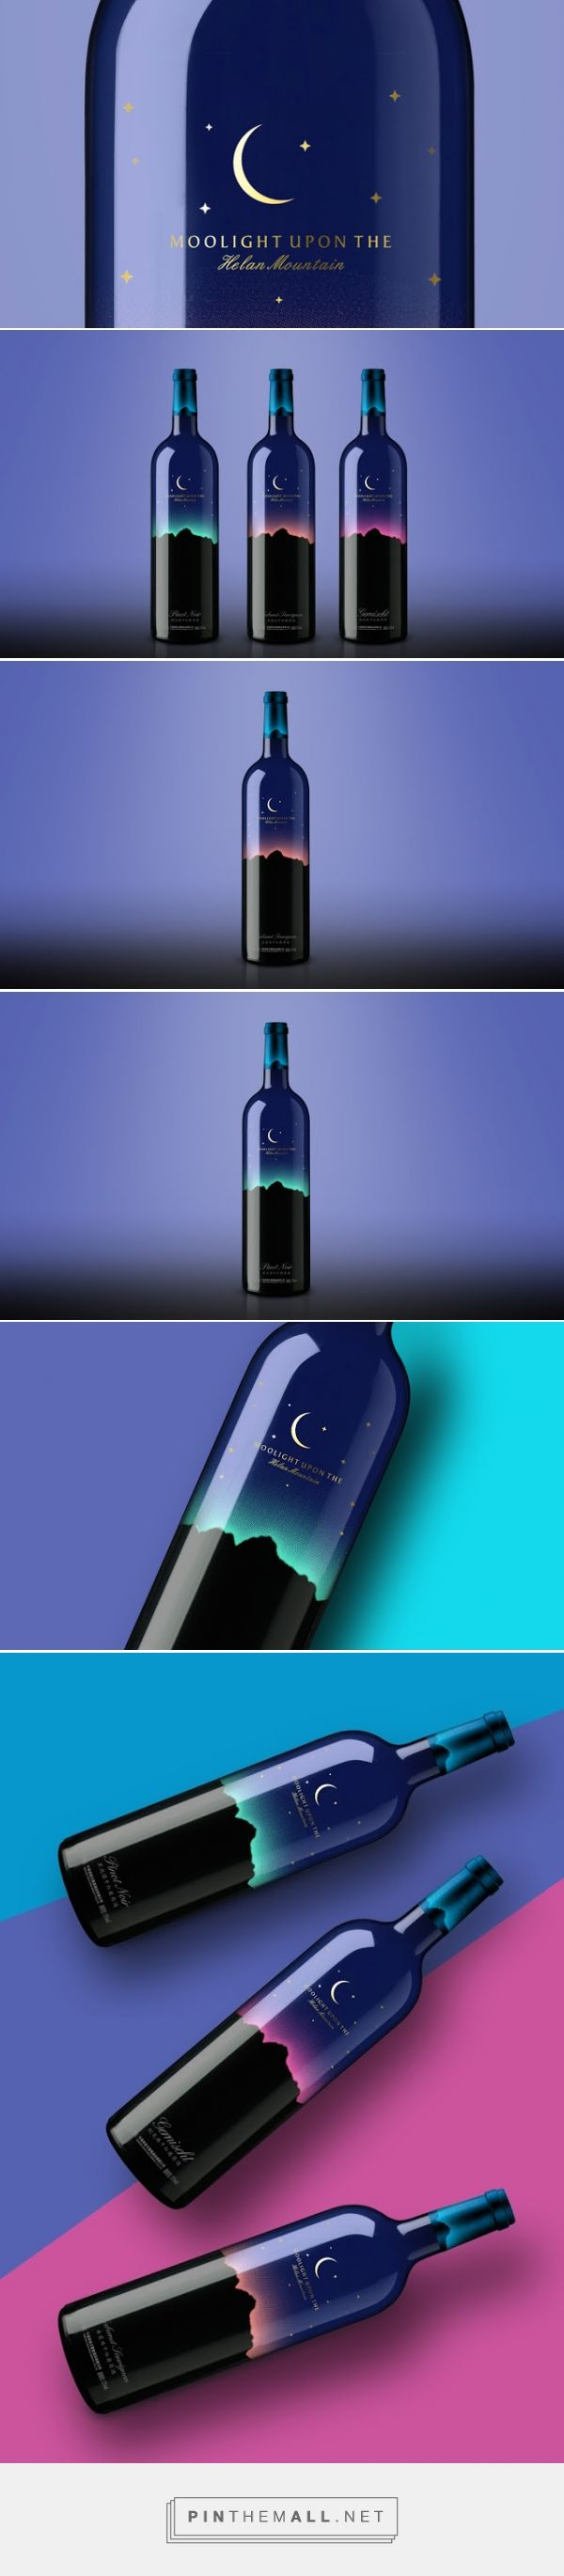 Agency: Pesign Design Project Type: Produced, Commercial Work Packaging Content: Wine Location: Shen Zhen, China